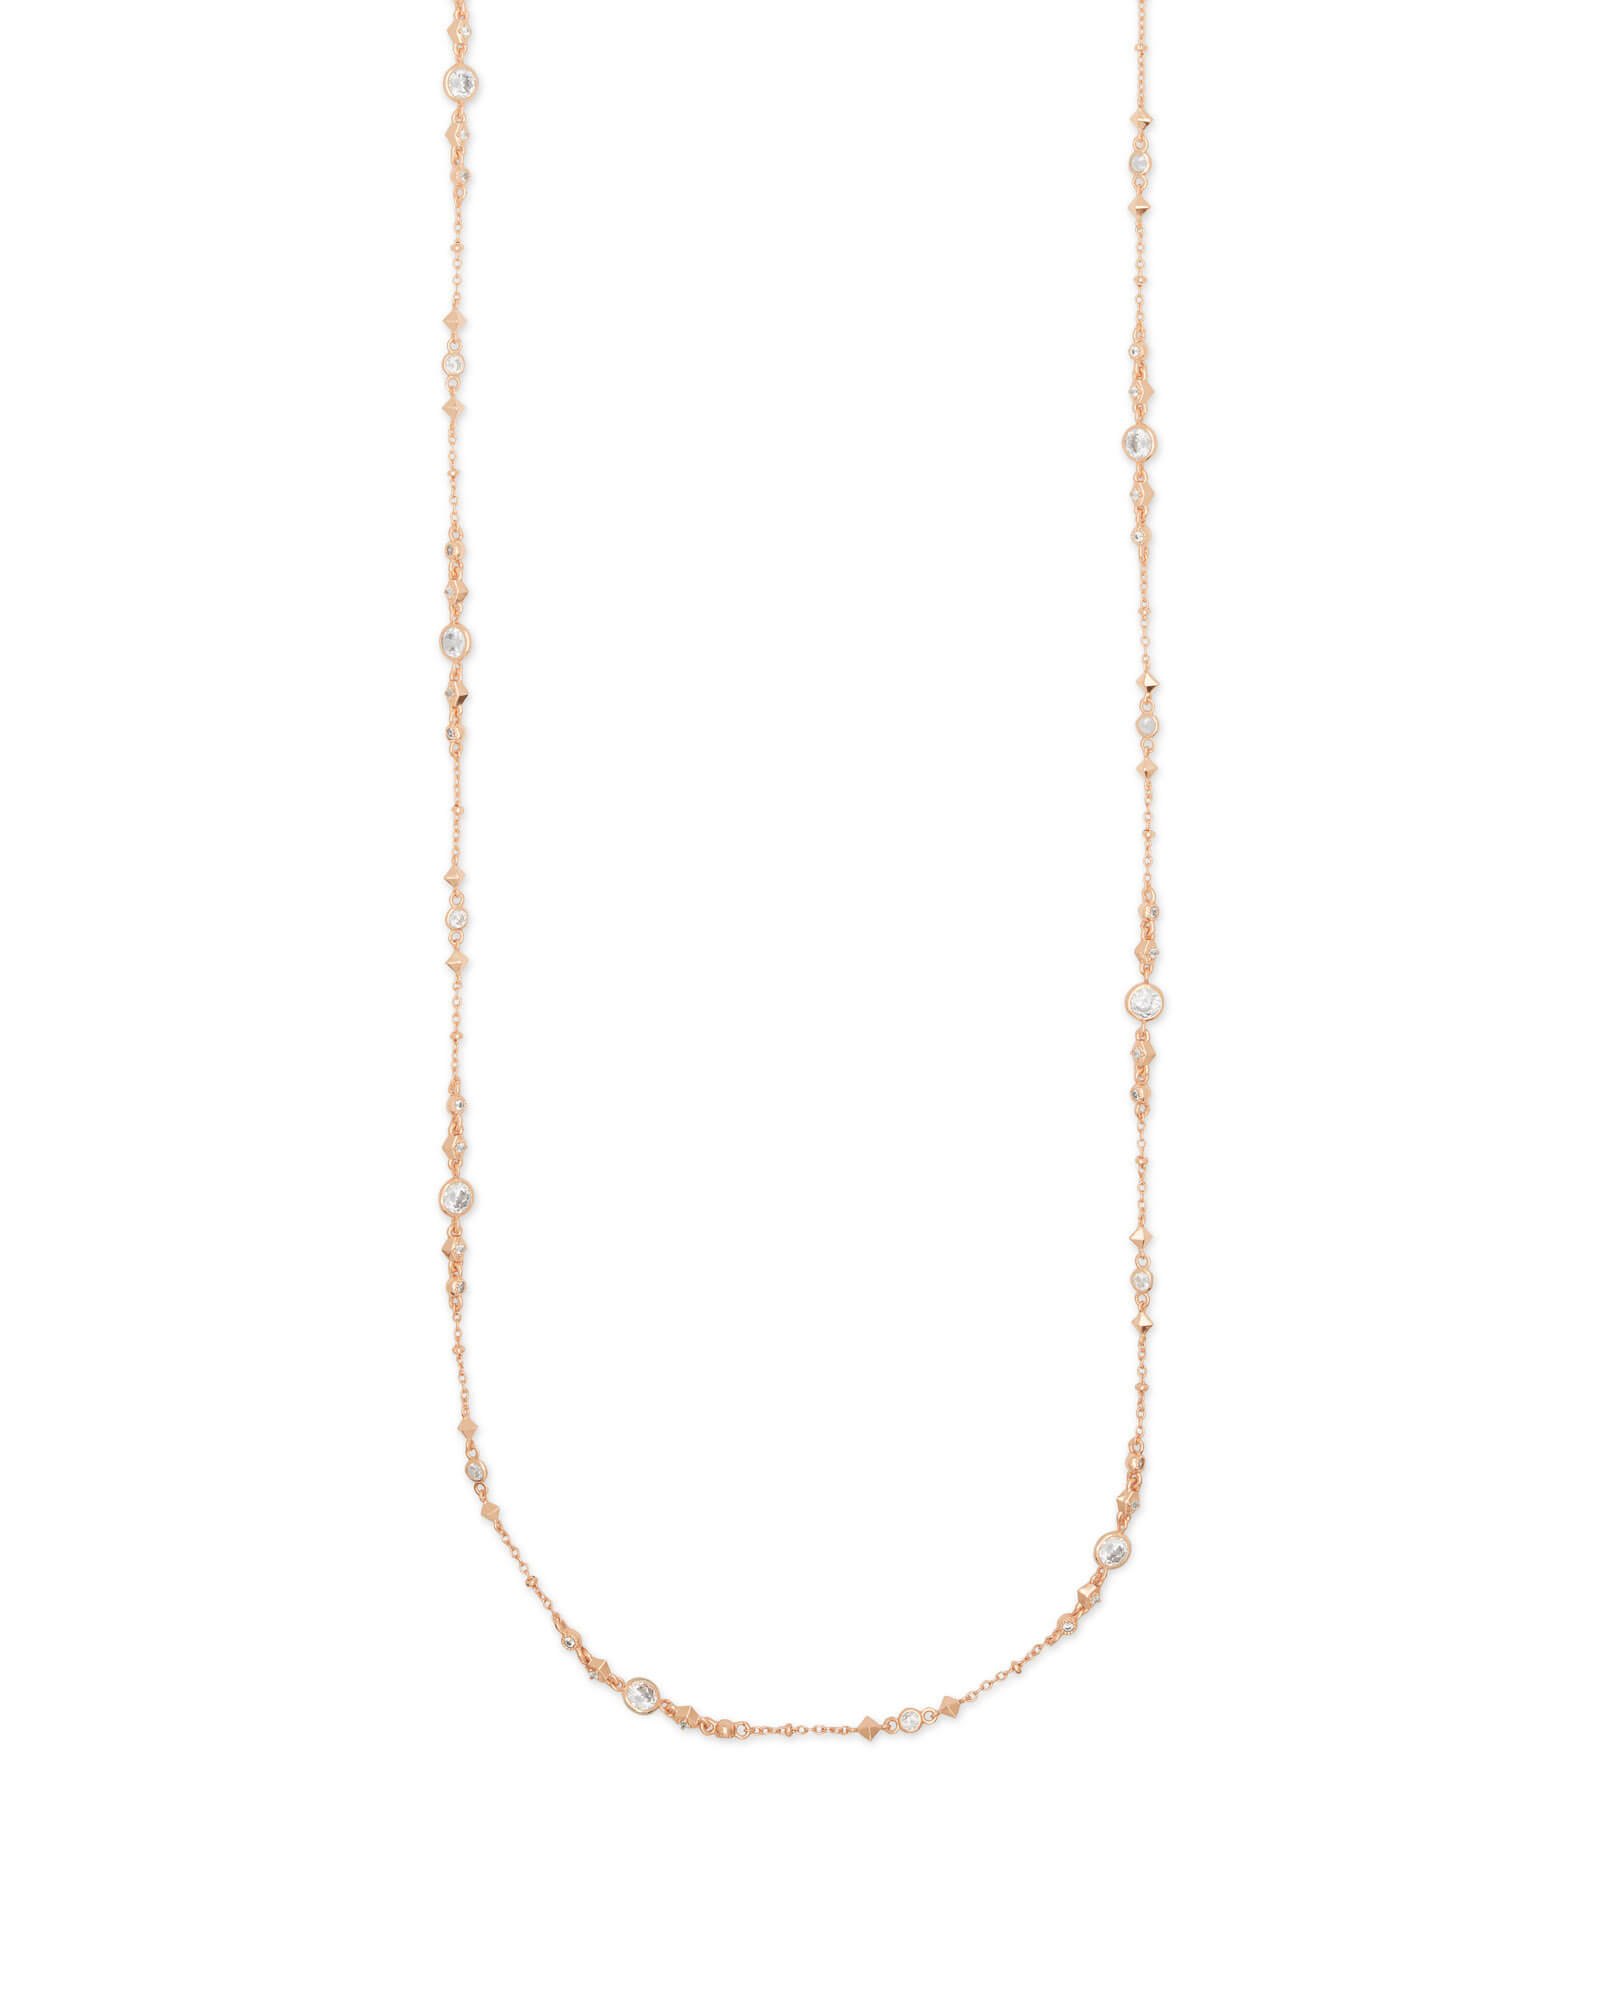 Wyndham Long Necklace in Rose Gold